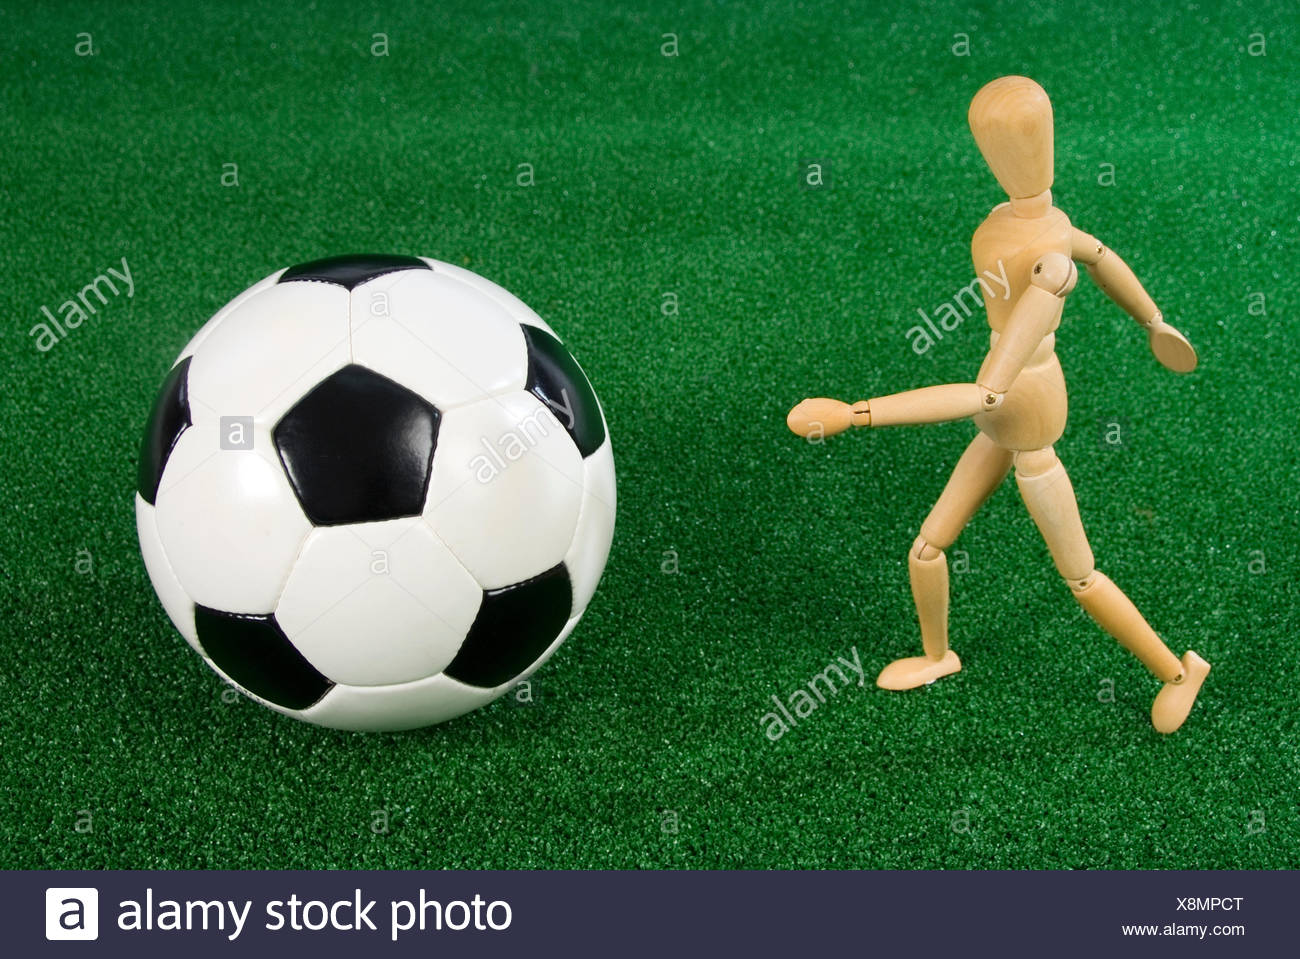 Footballer, jointed mannequin with a football - Stock Image